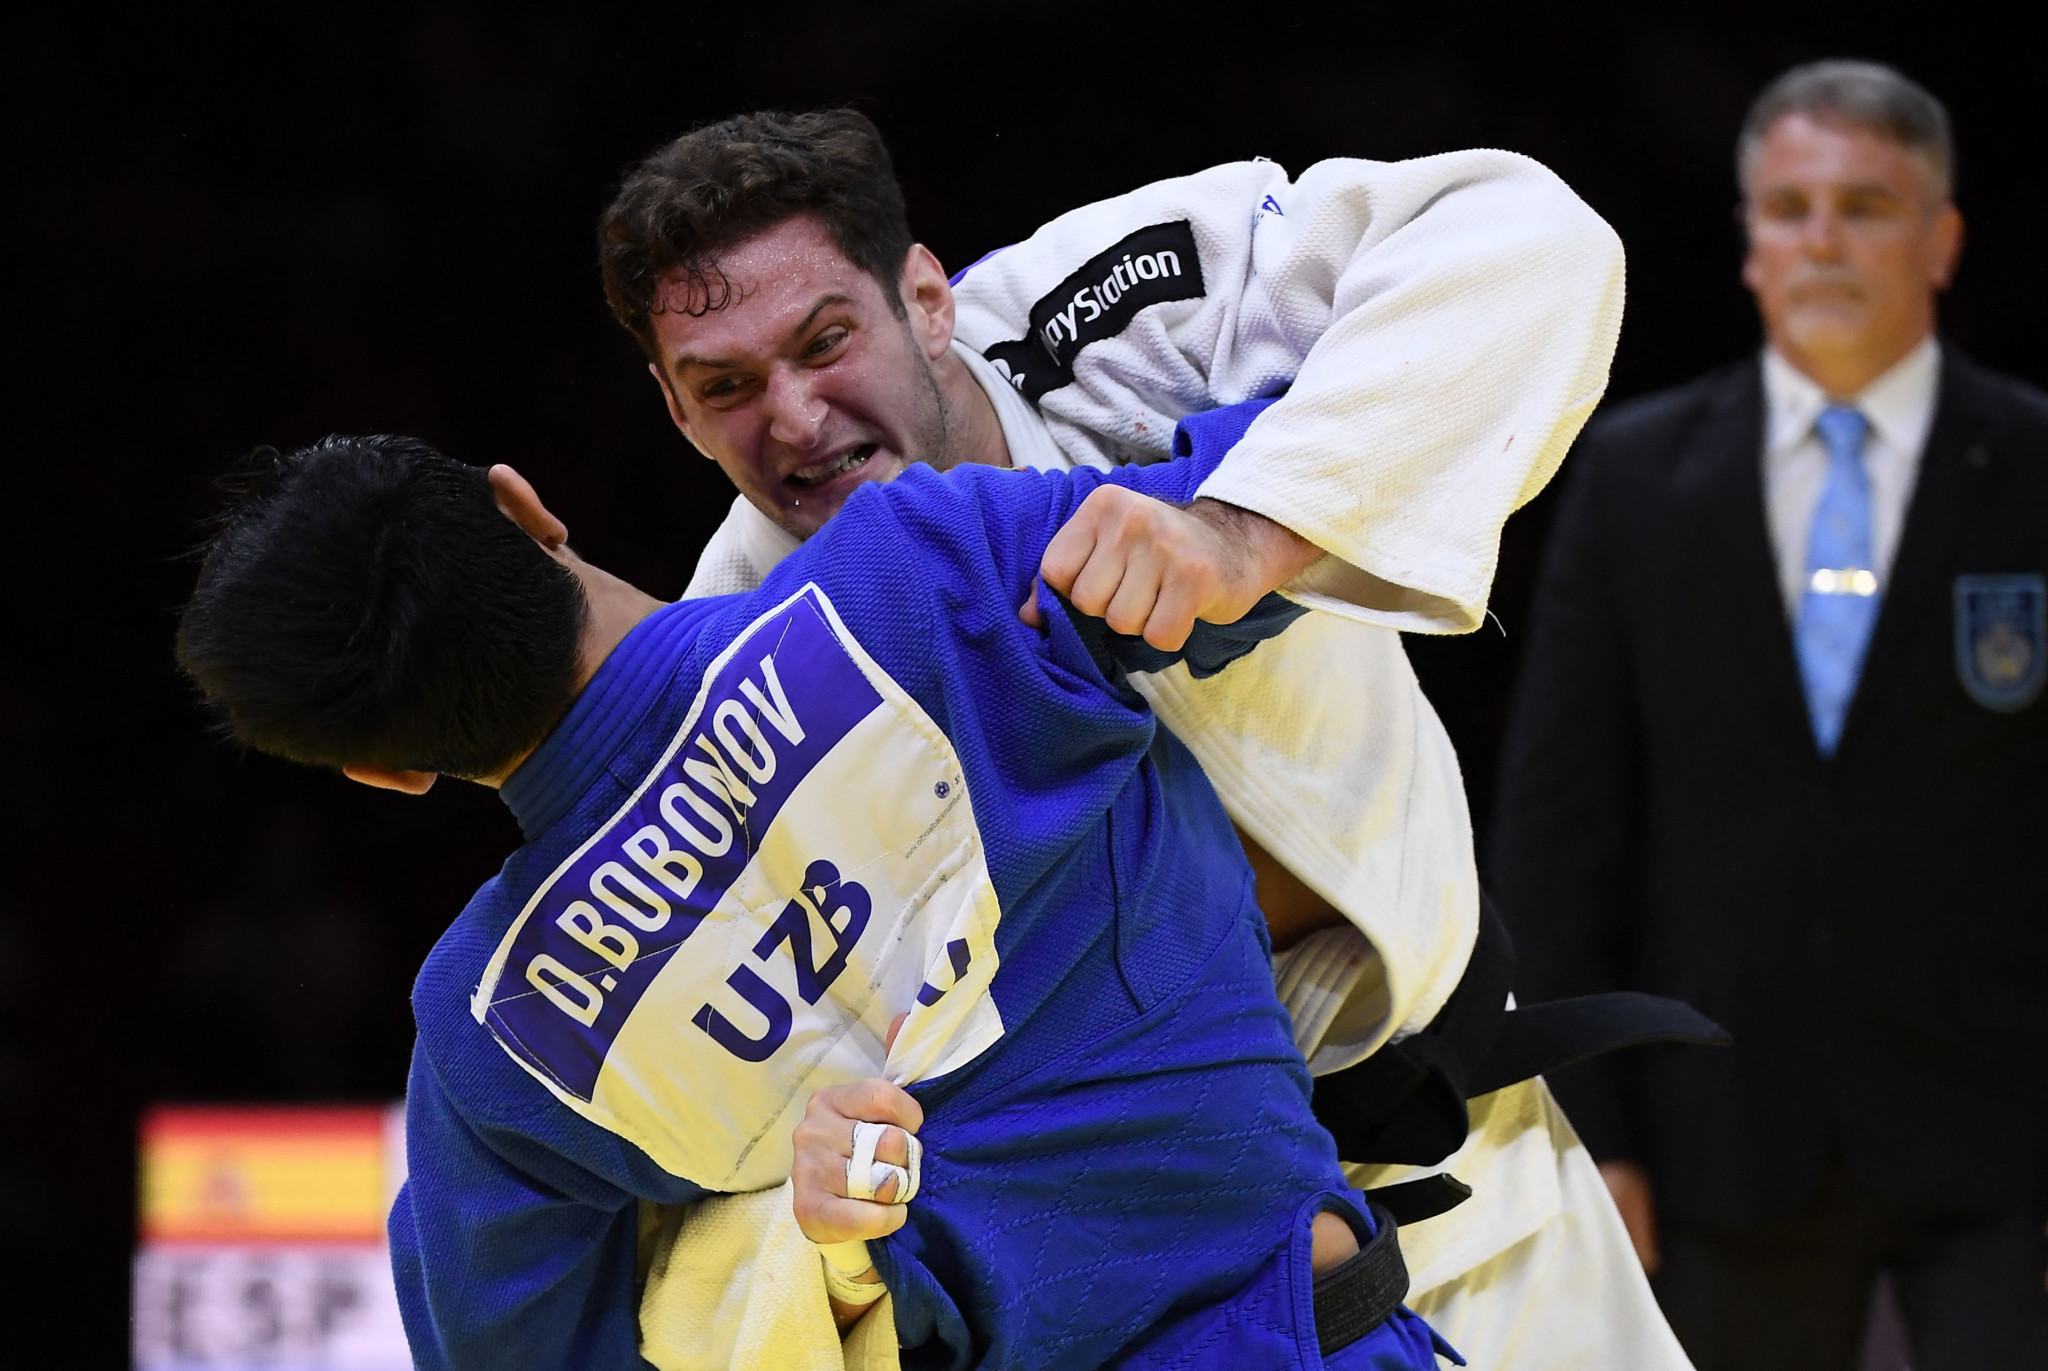 Sherazadishvili, in white, shows real aggression during his showdown with Bobonov ©Getty Images